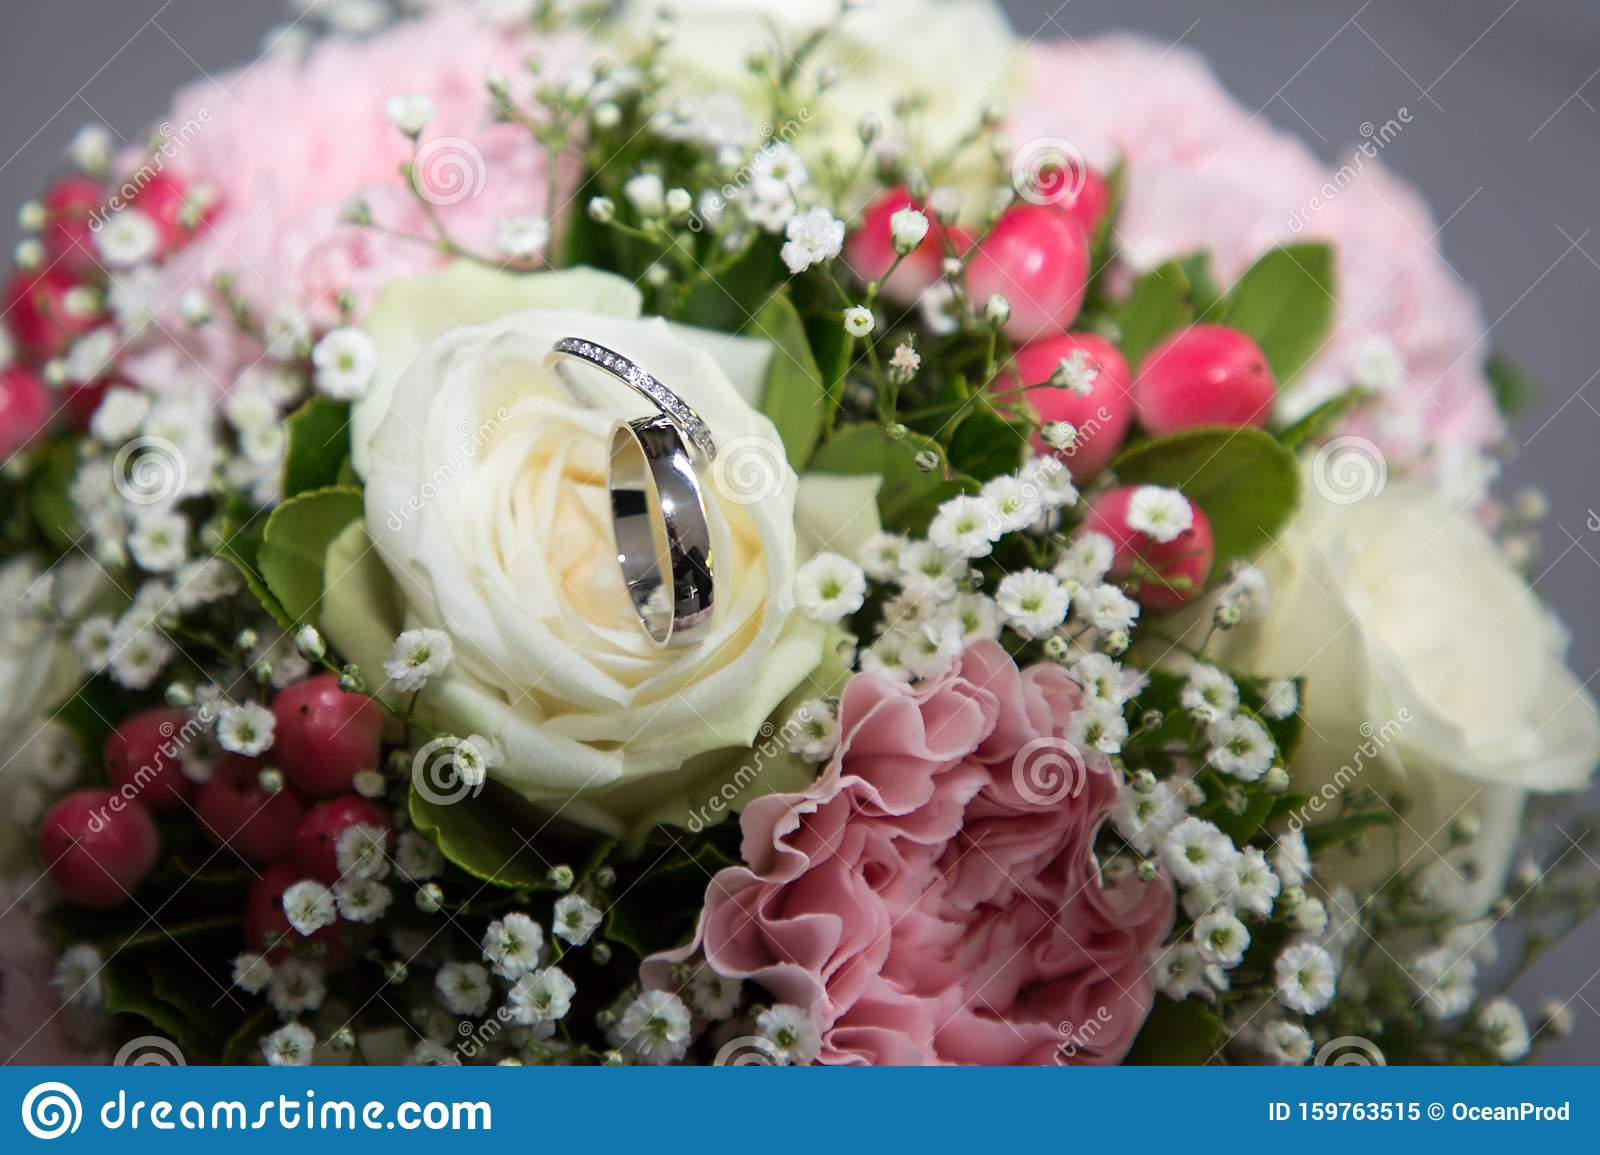 Beautiful Wedding Bouquet Of Pink And White Flowers With Marriage Rings Stock Image Image Of Bridal Romantic 159763515